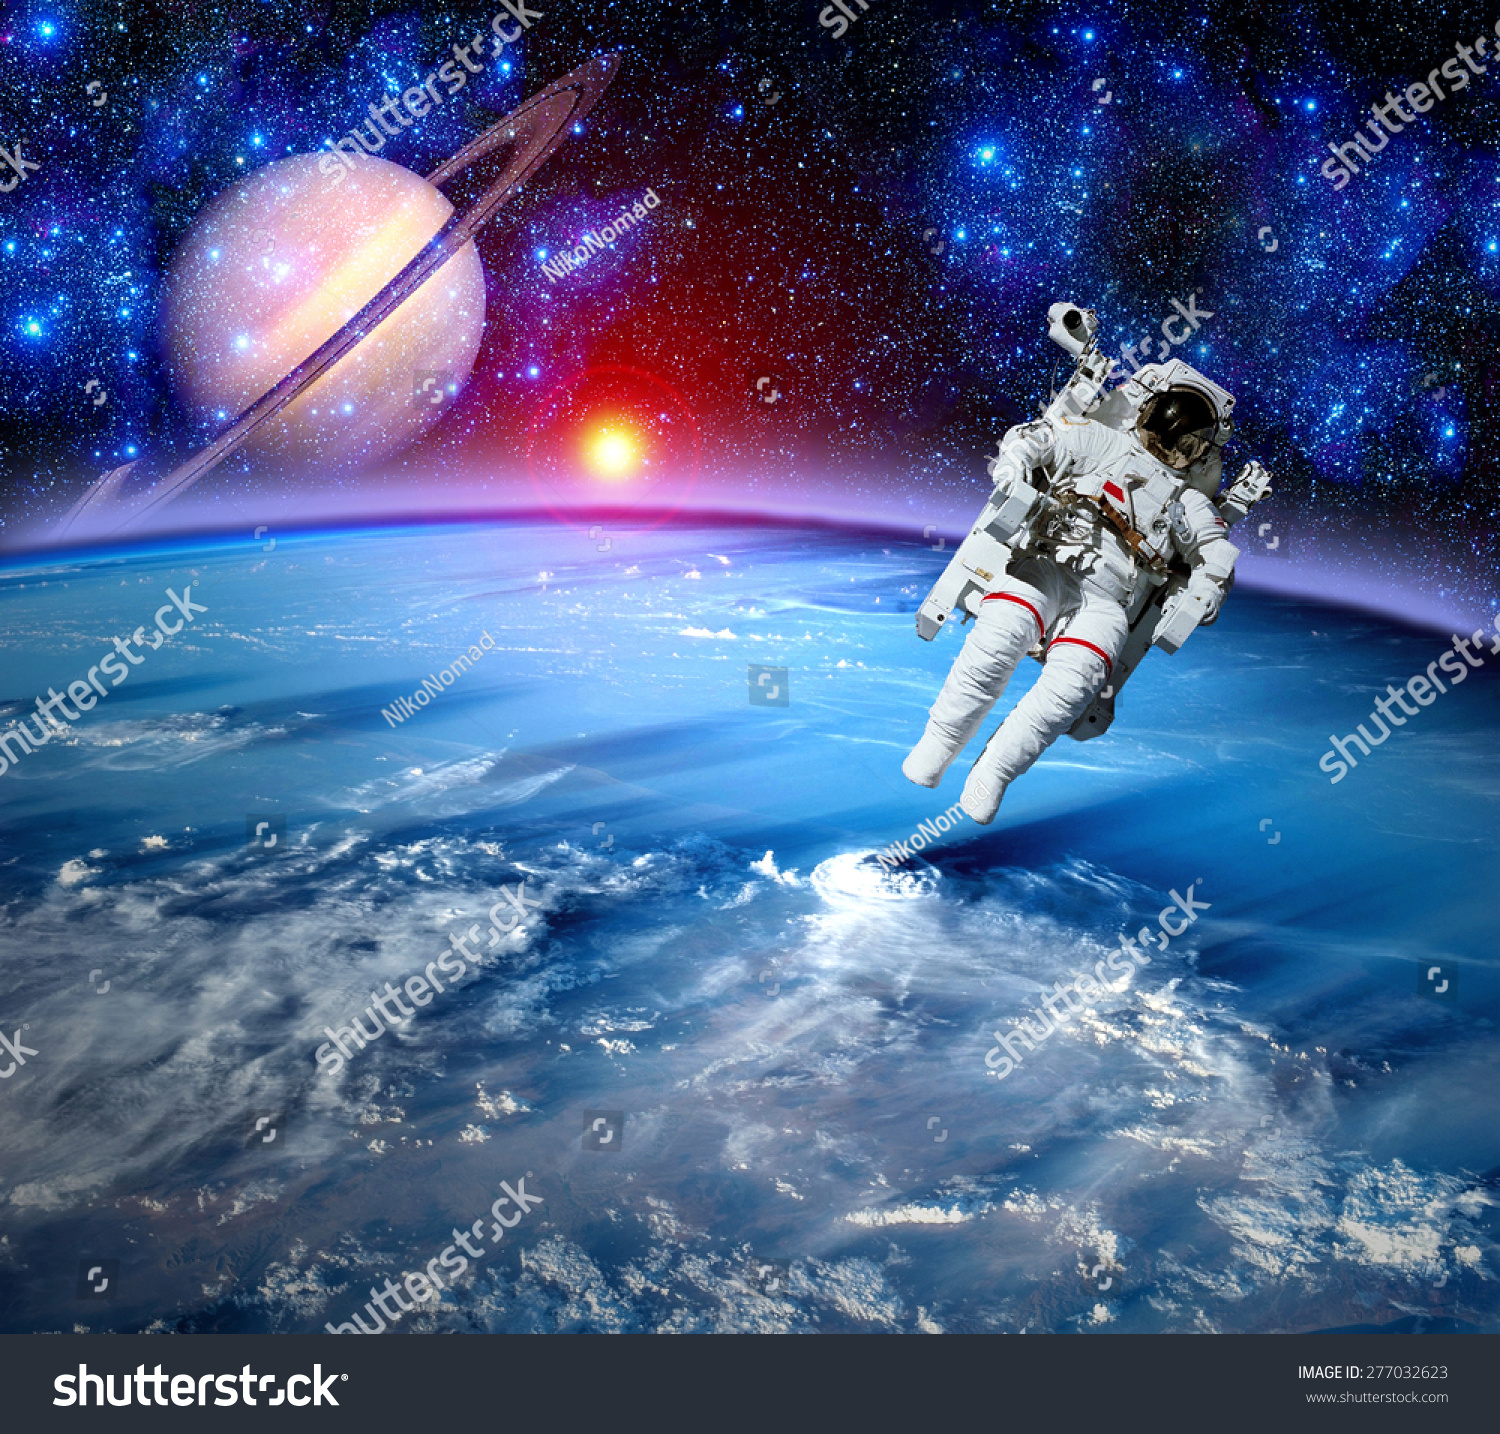 astronaut the outer space appears - photo #18